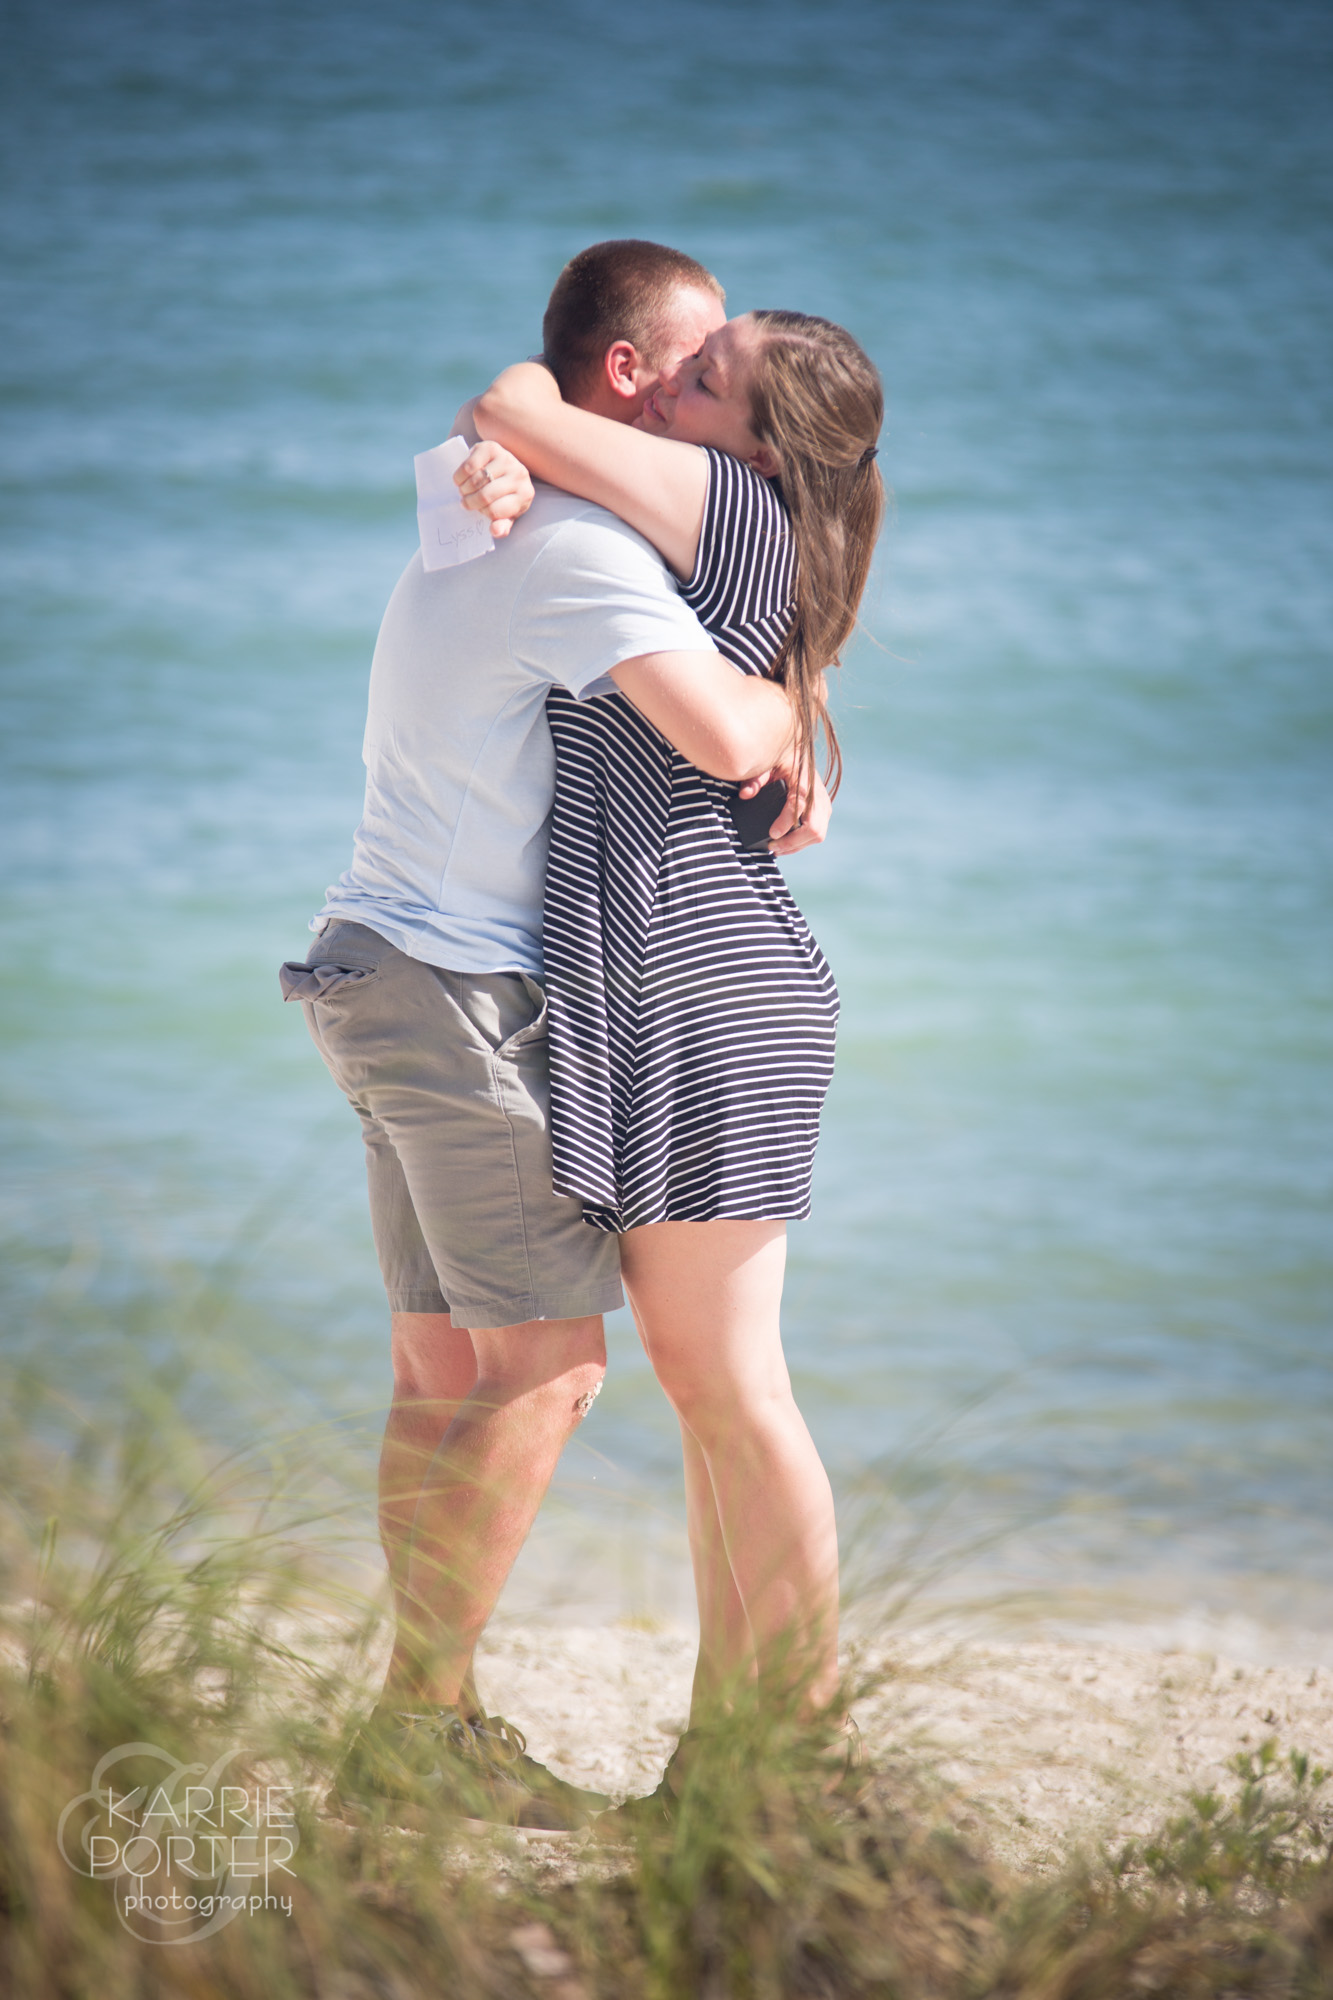 Guy and girl hugging after he pops the question